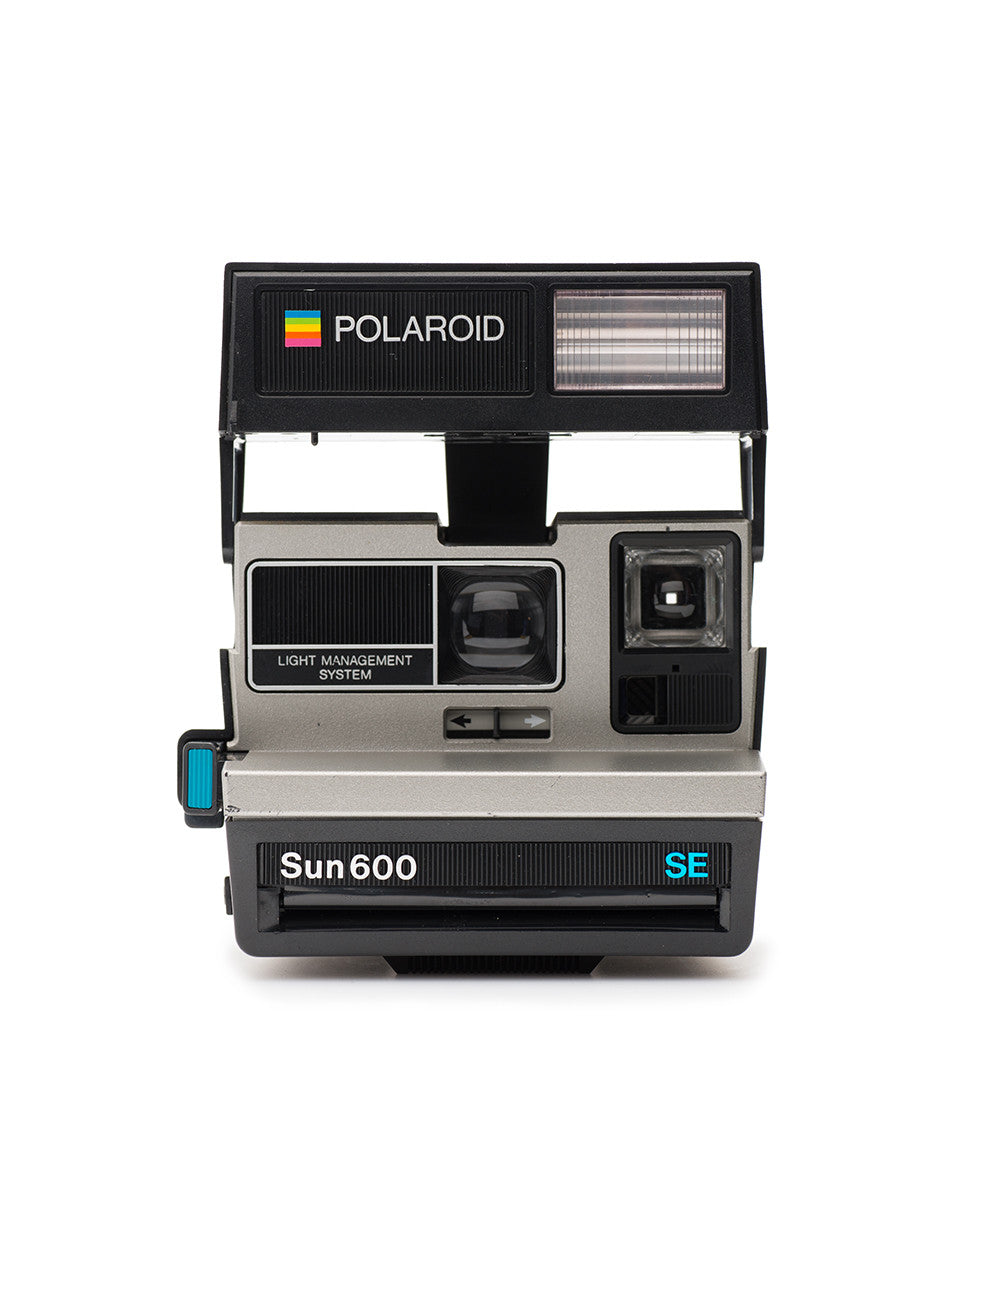 600 Square Polaroid Camera